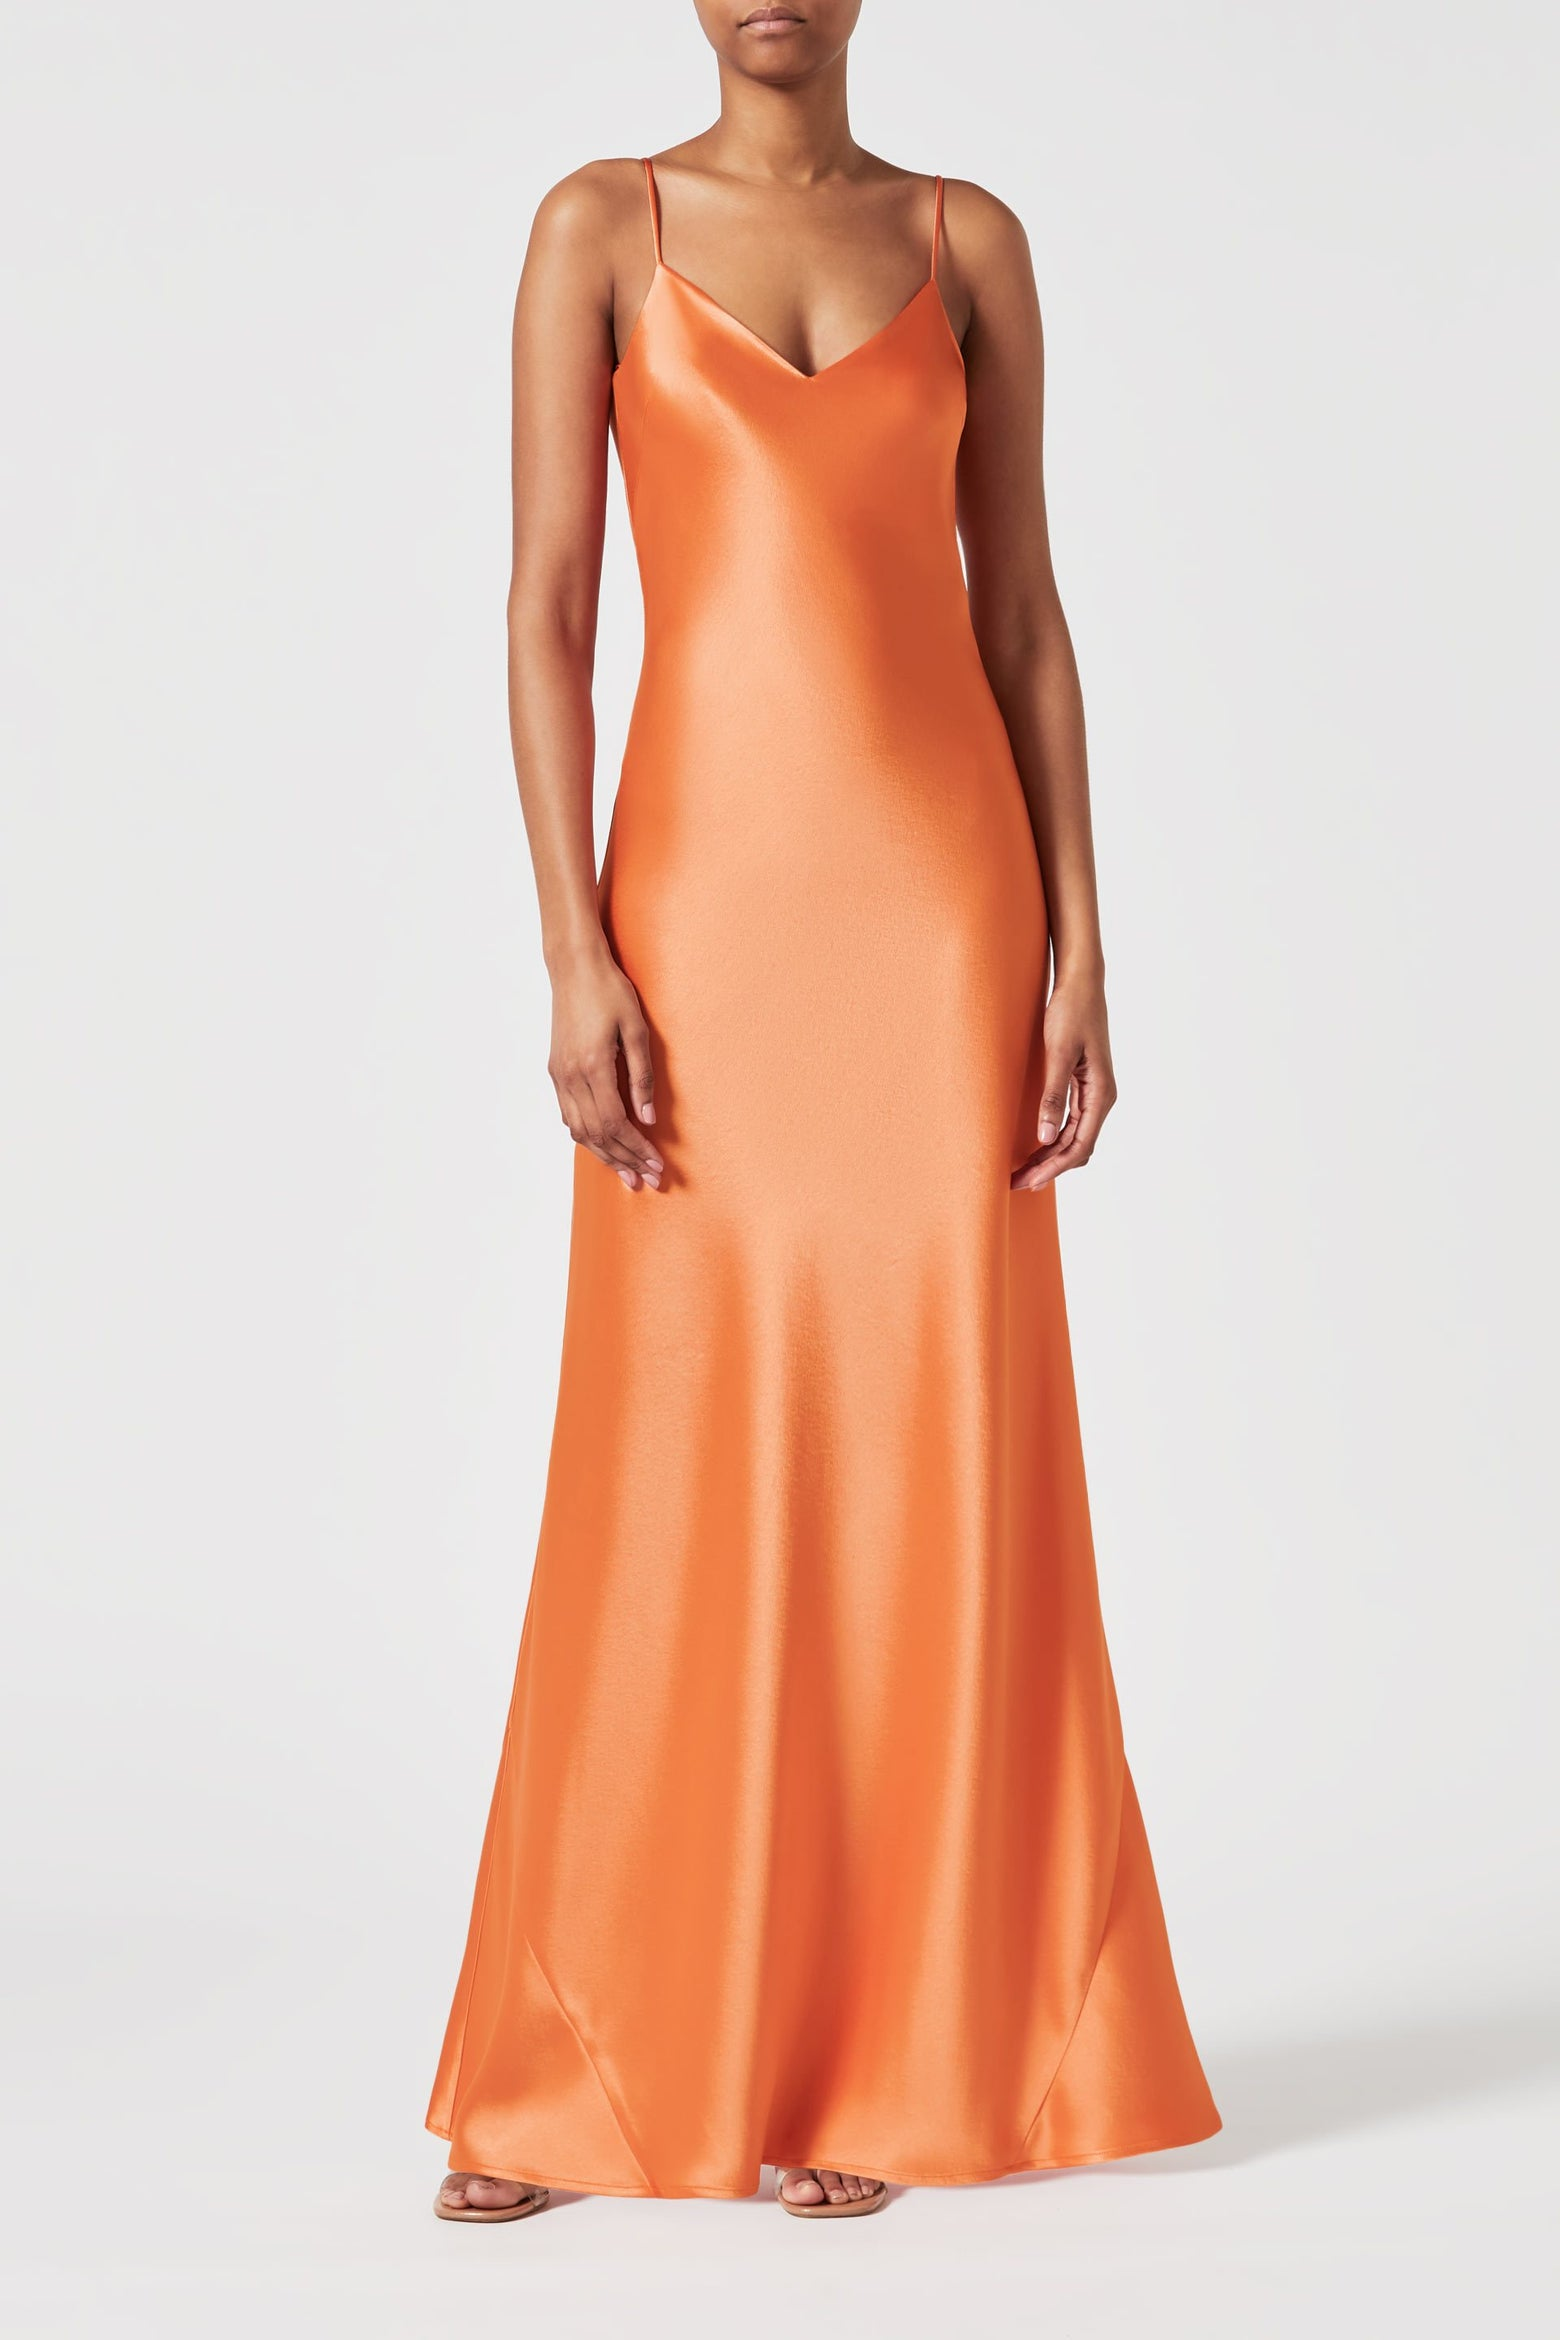 Satin V-Neck Slip Dress - Apricot